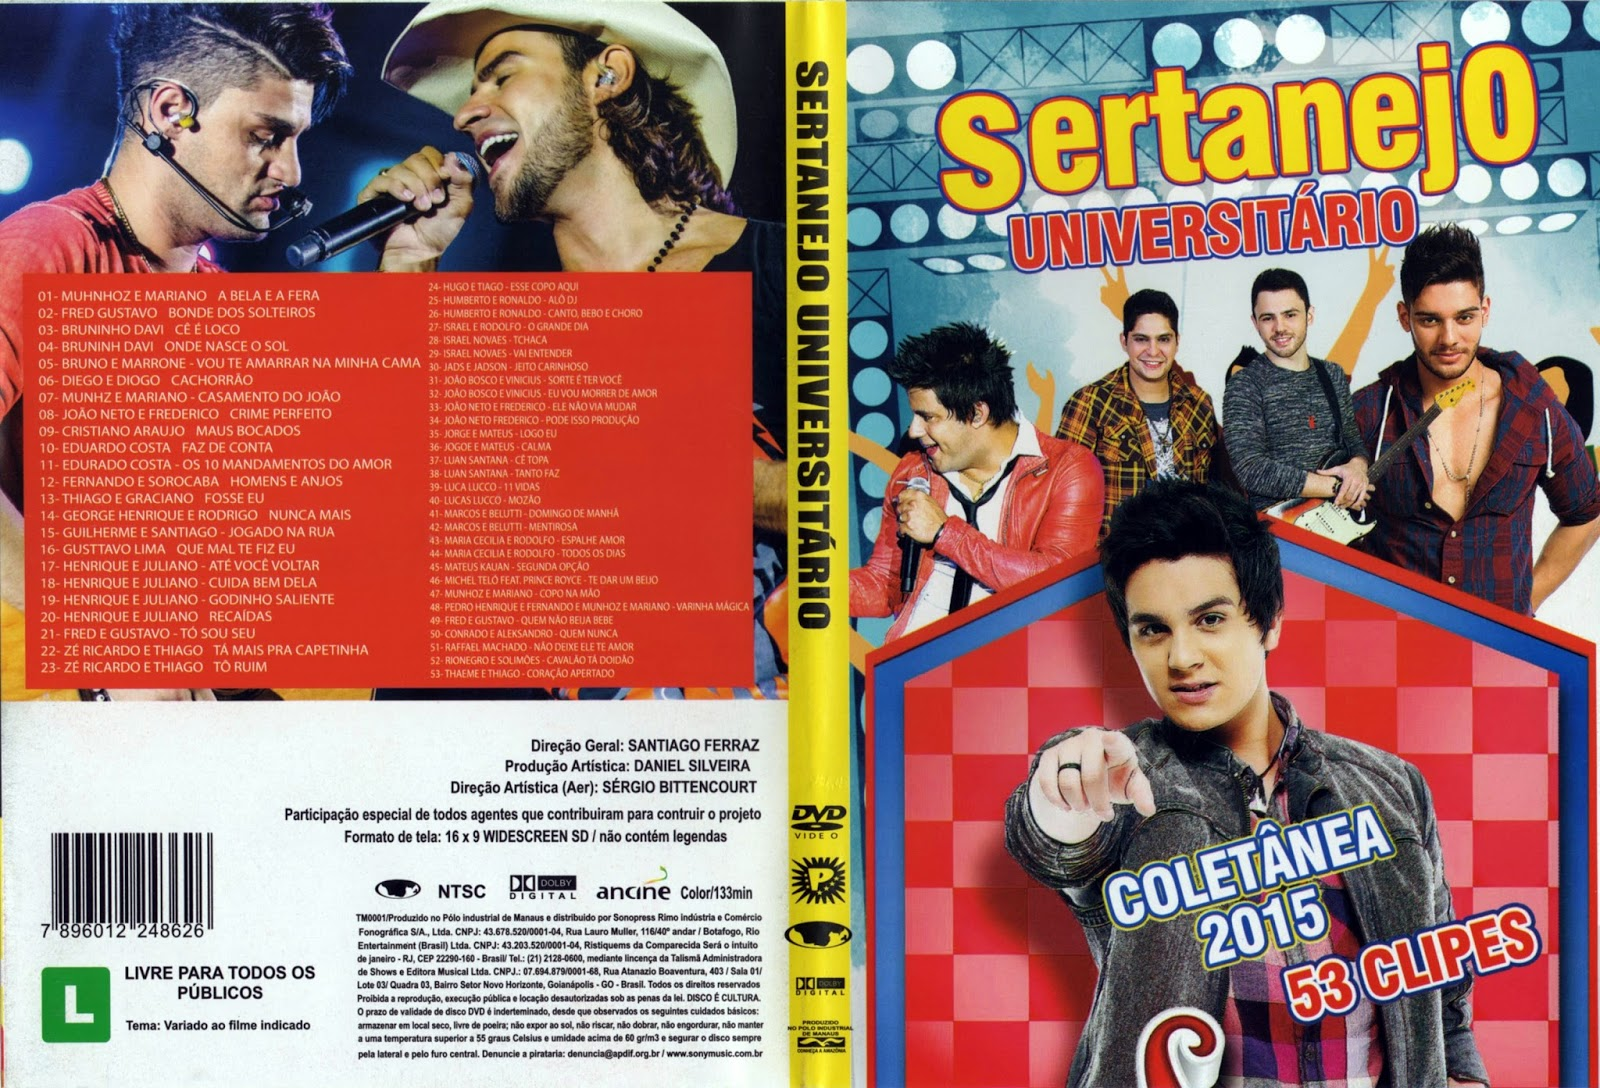 DVD Sertanejo Universitário 2015